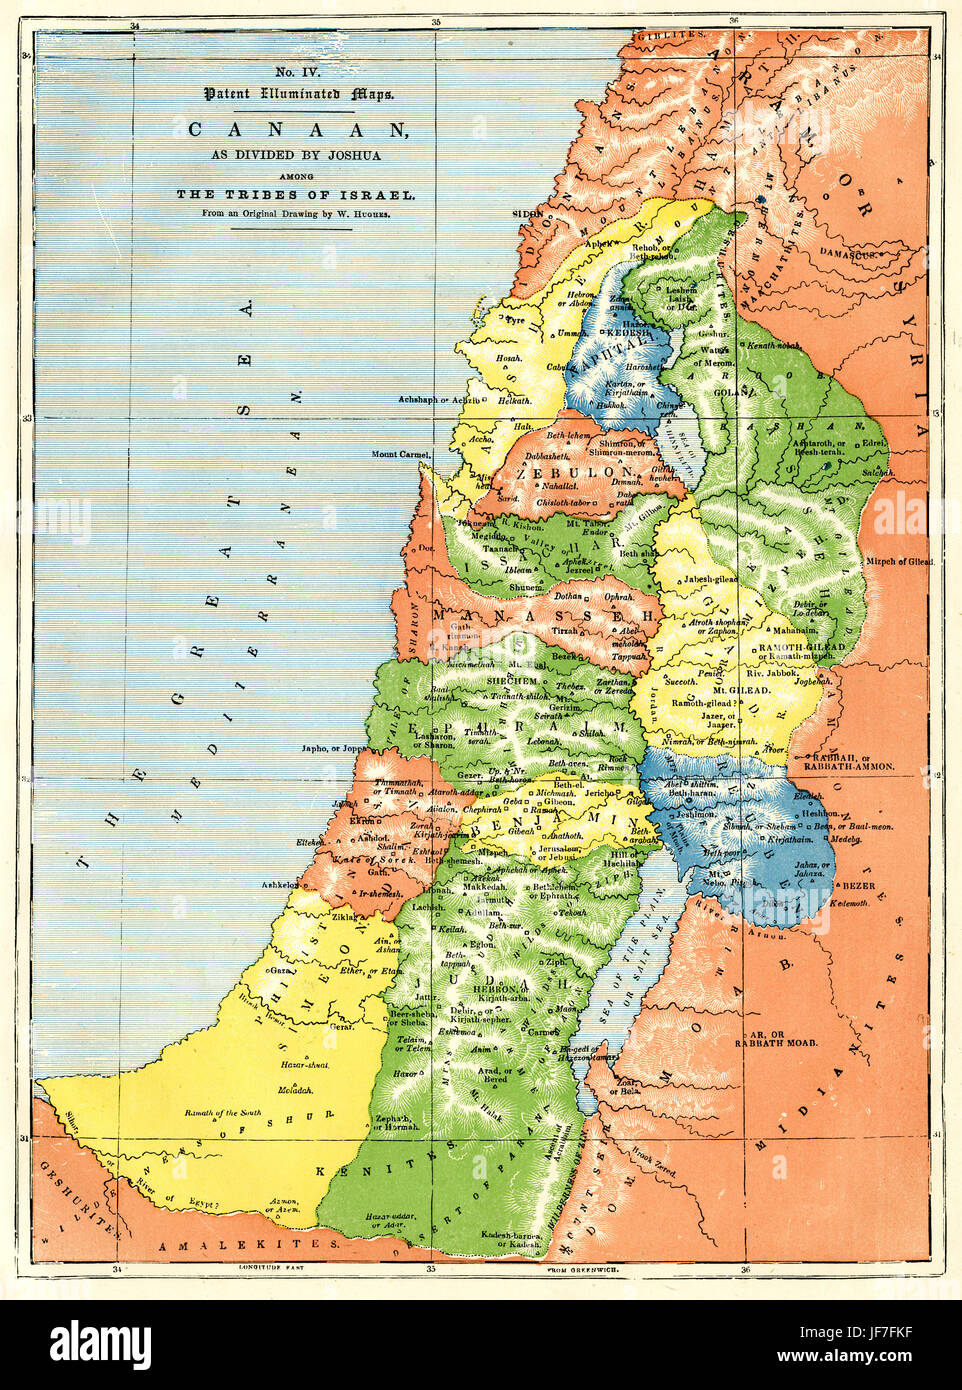 Map showing lands of canaan and territories divided among the map showing lands of canaan and territories divided among the tribes of israel from original drawing by william hughes sciox Choice Image